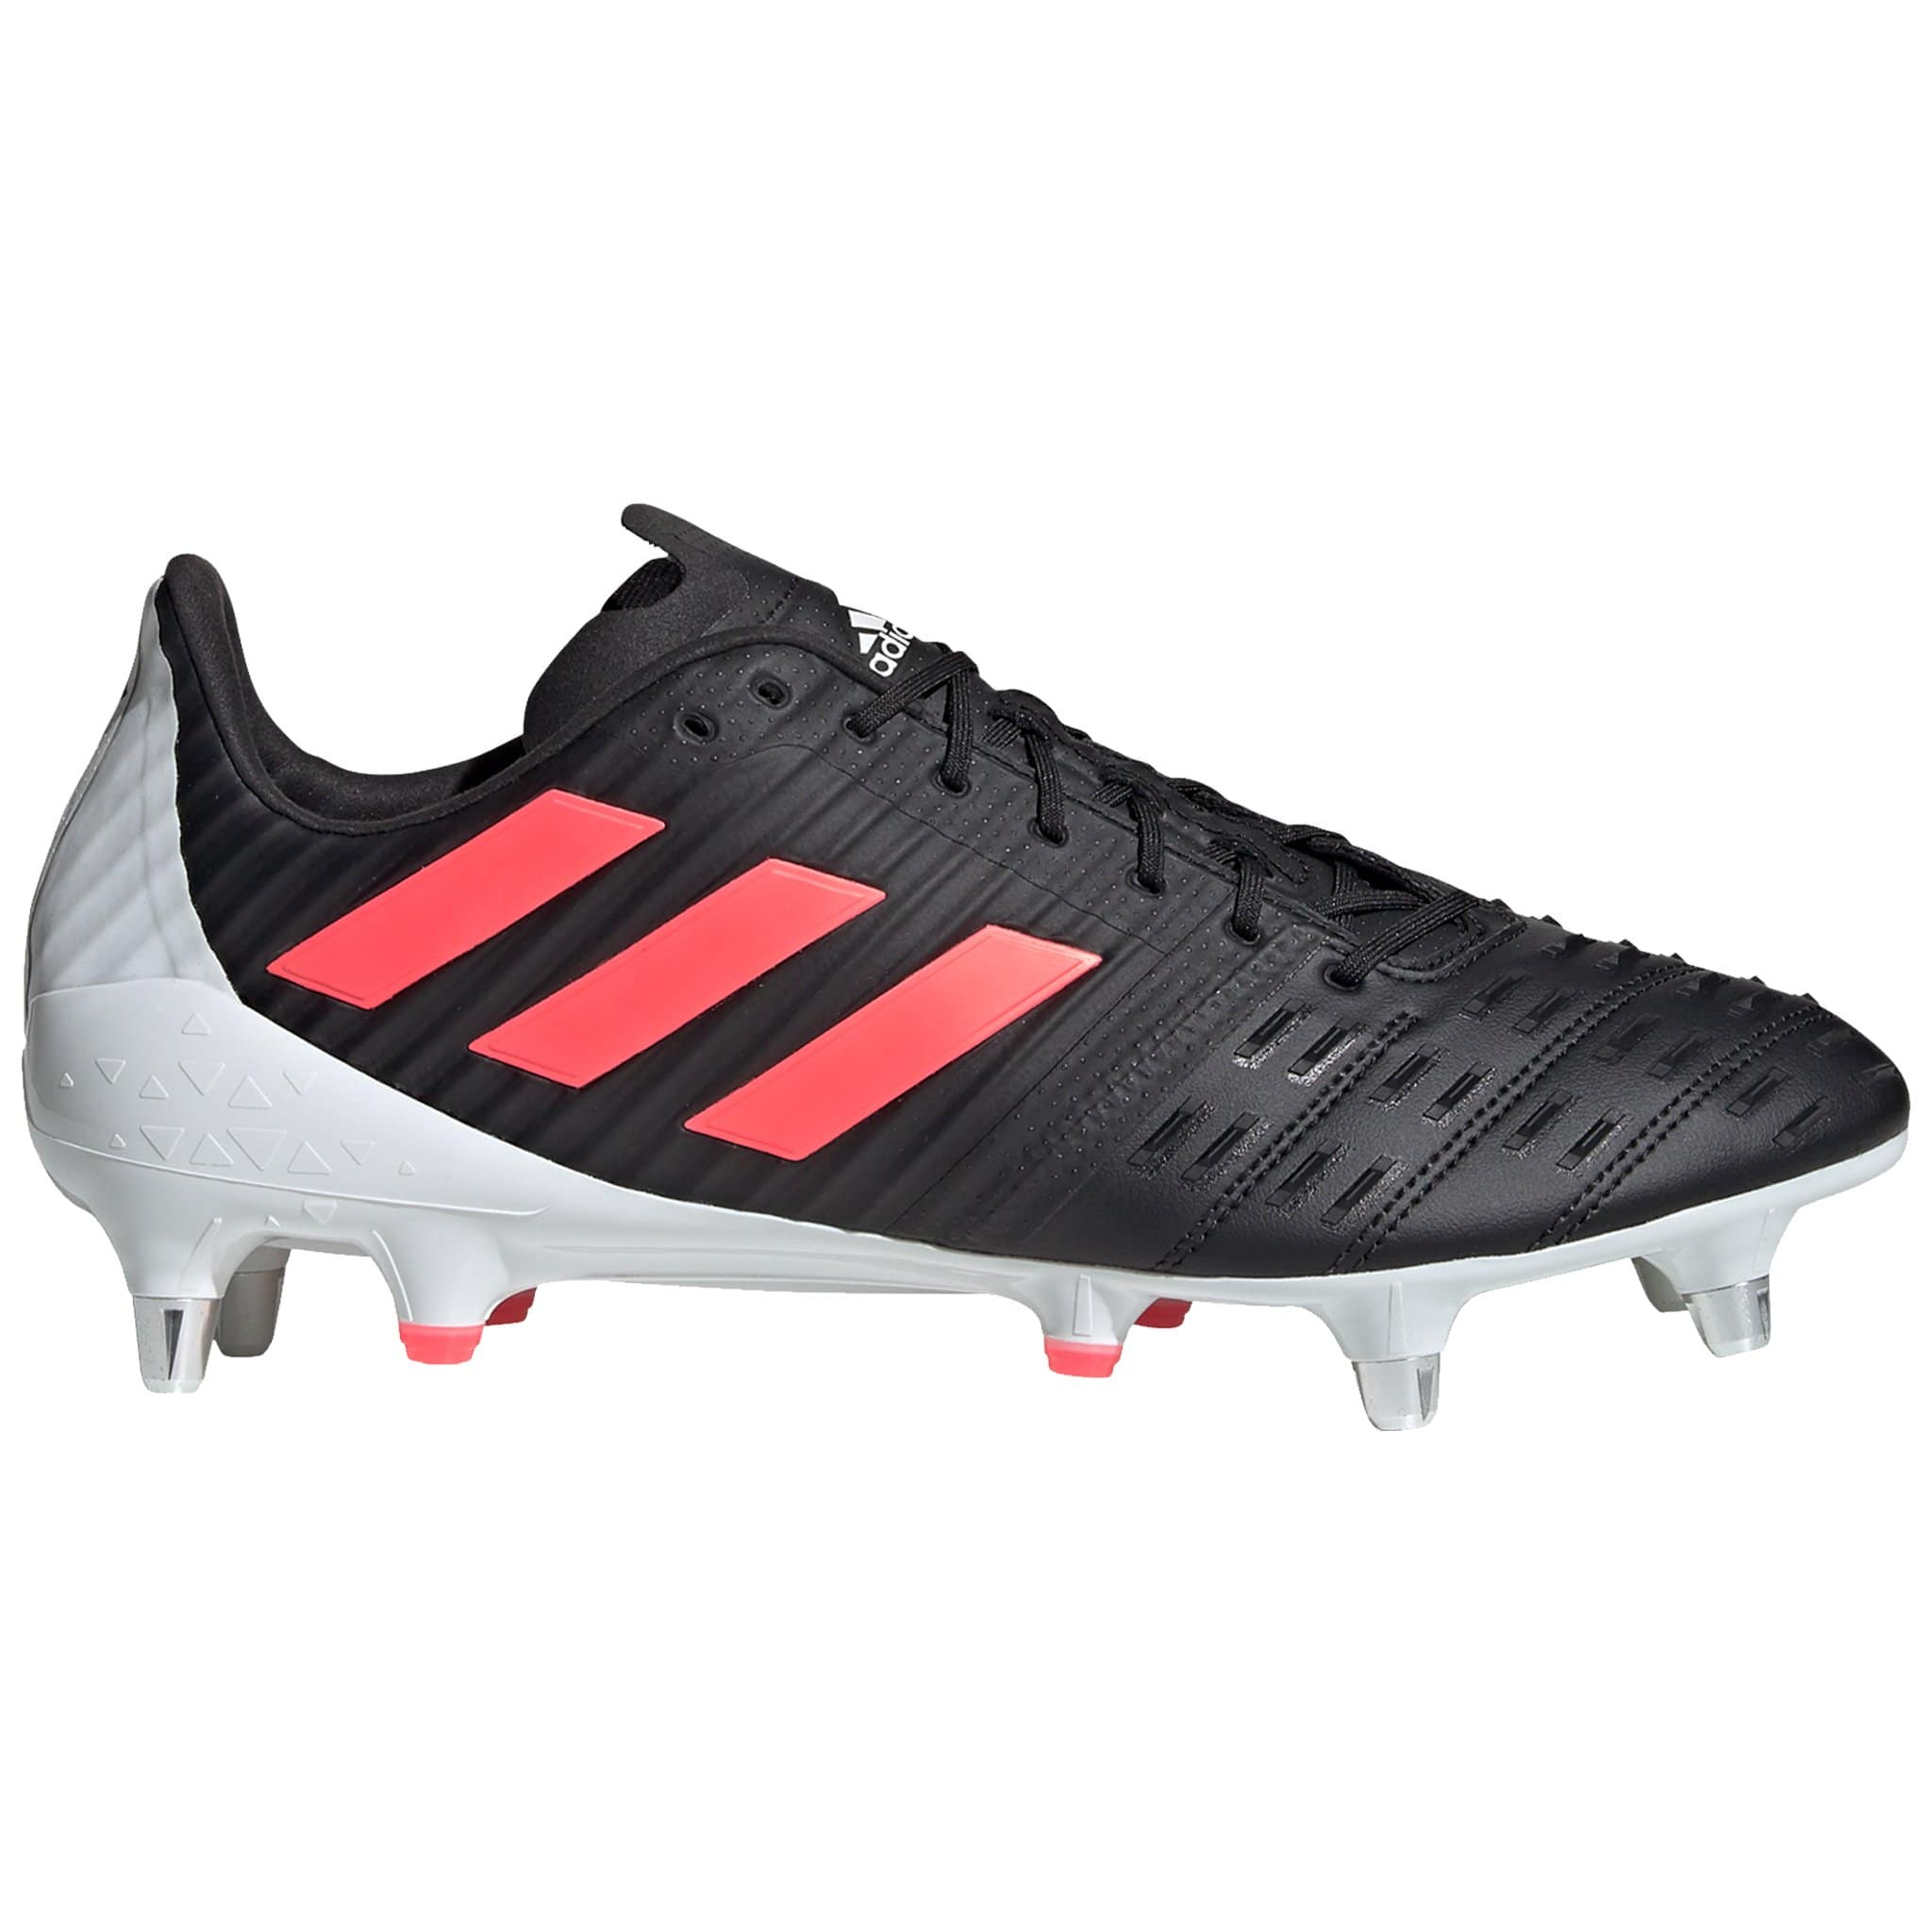 Side View Black Adidas Rugby Boot With Pink Stripes and White Back